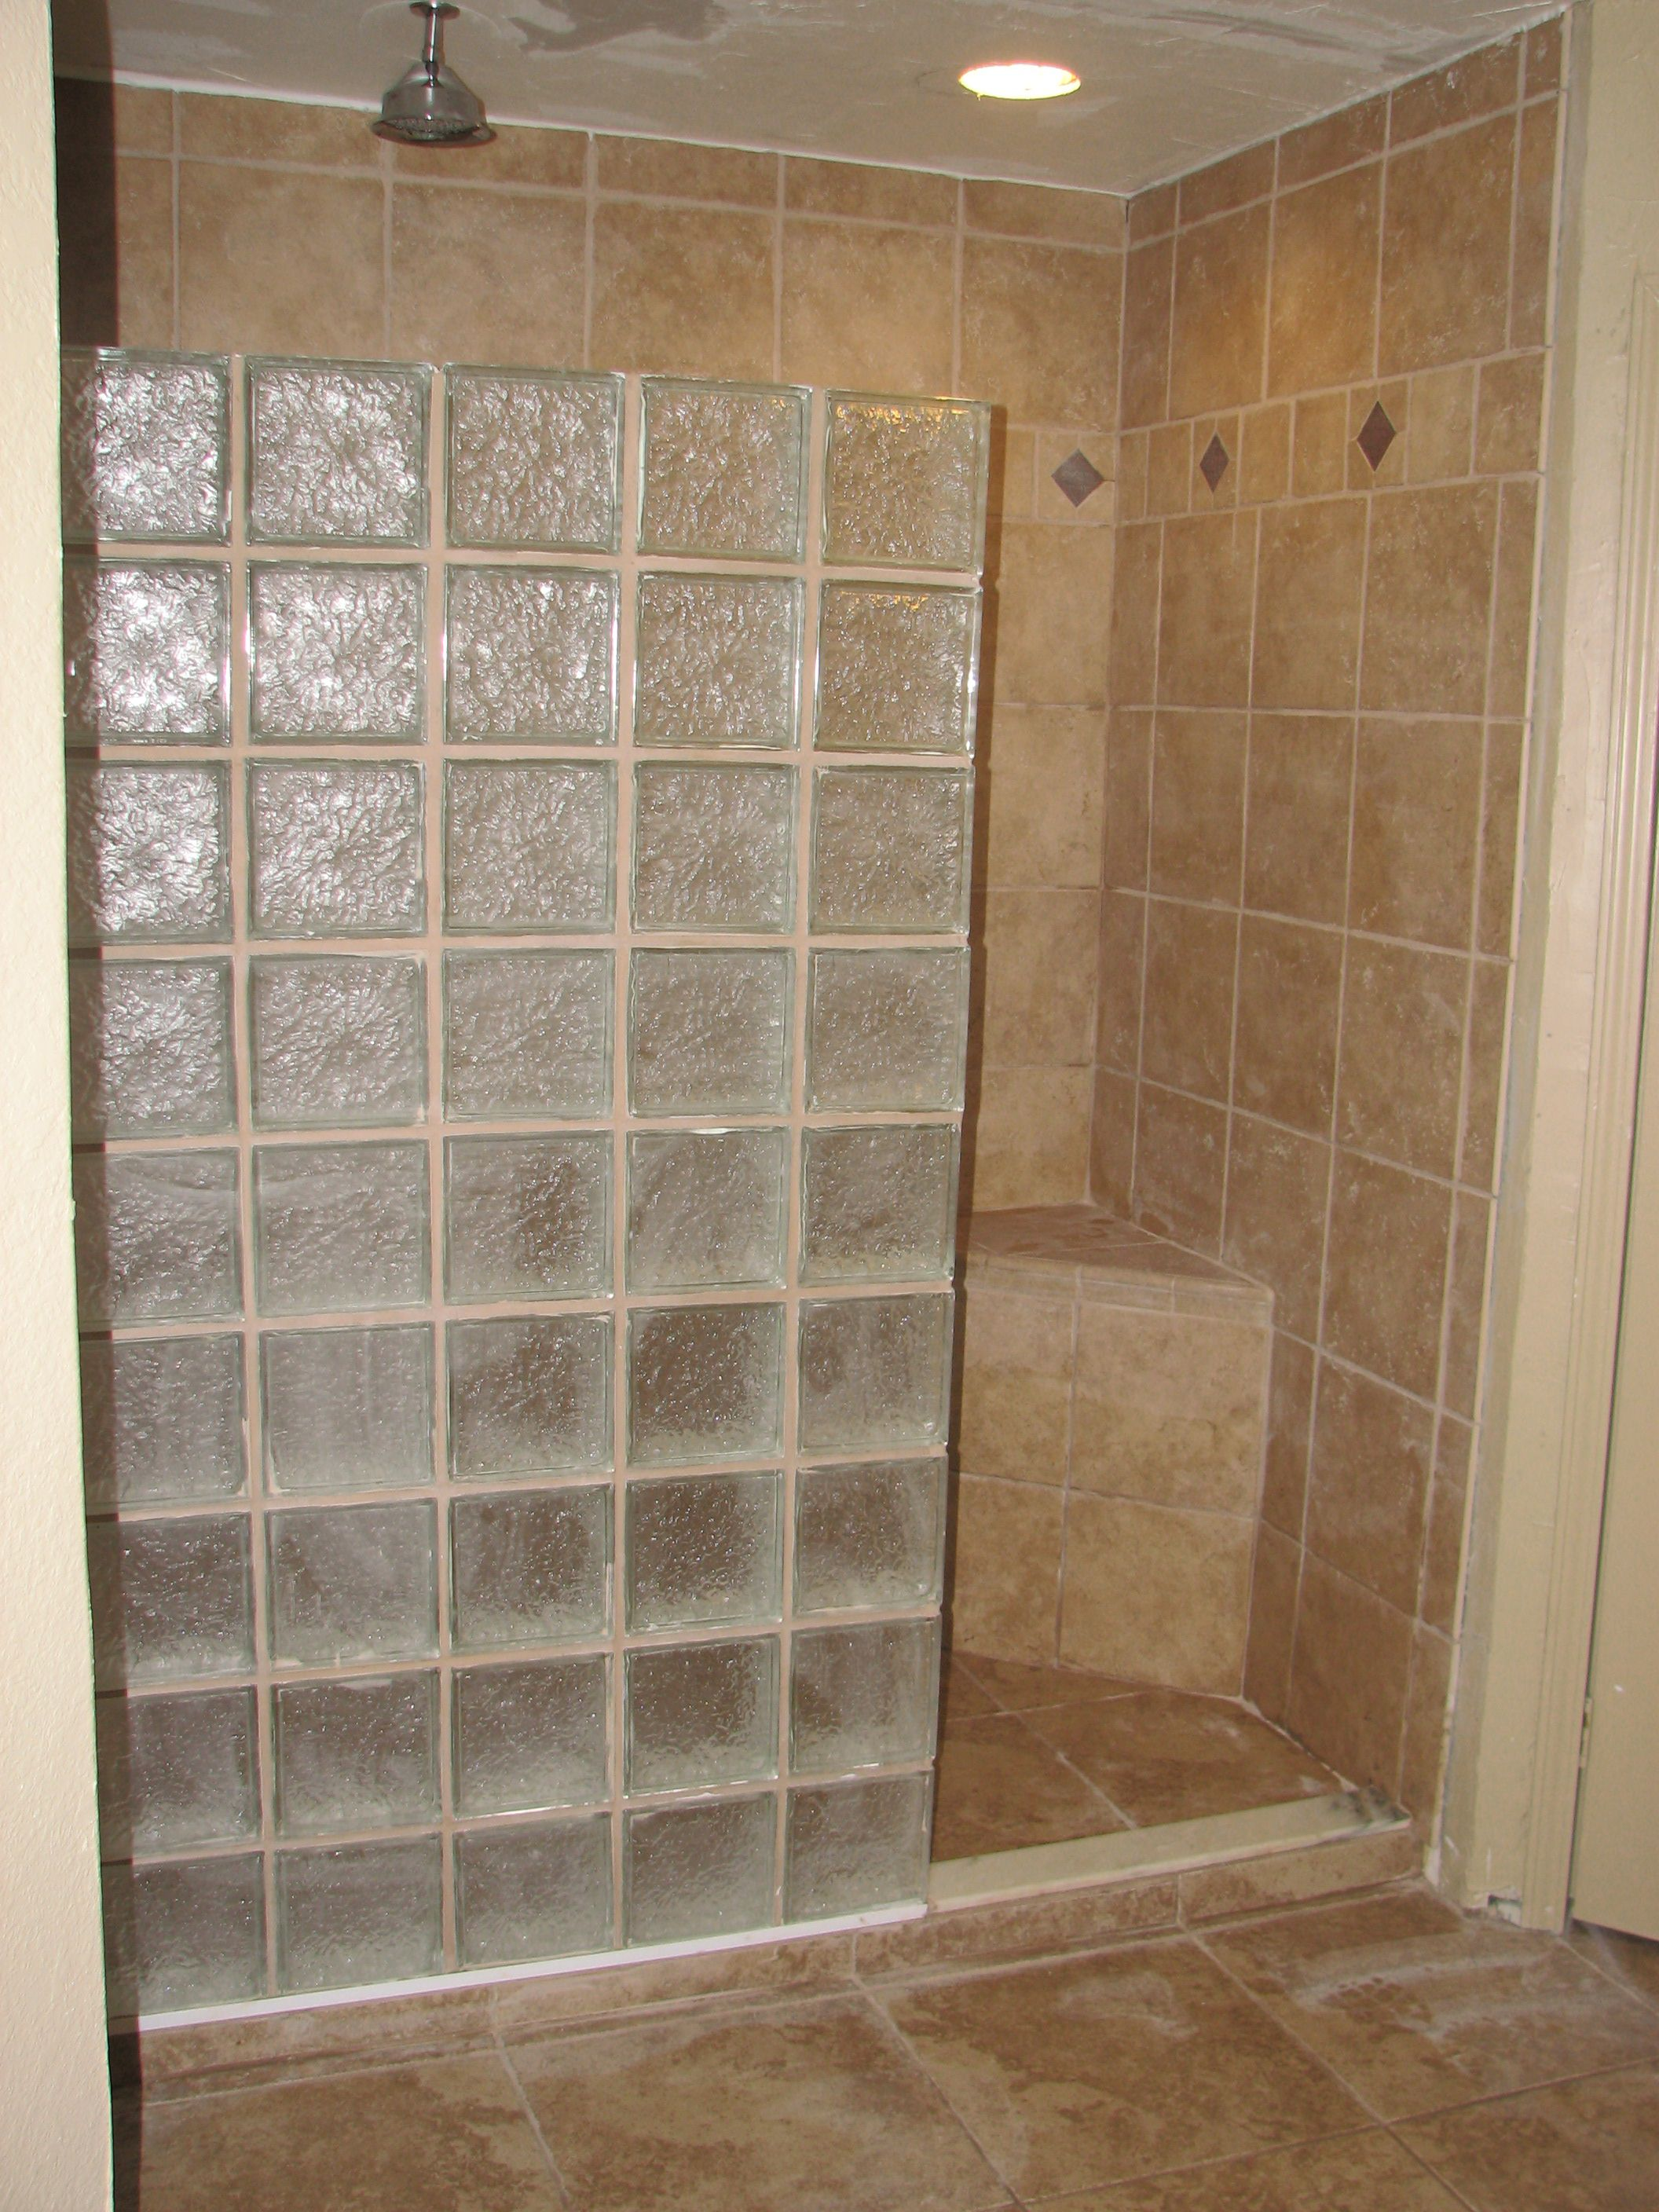 bathroom small bathroom remodeling bathroom remodel construction bathroom small bathroom remodeling bathroom remodel construction and handyman services shop small network bathroom renovations ideas bathroom renovations